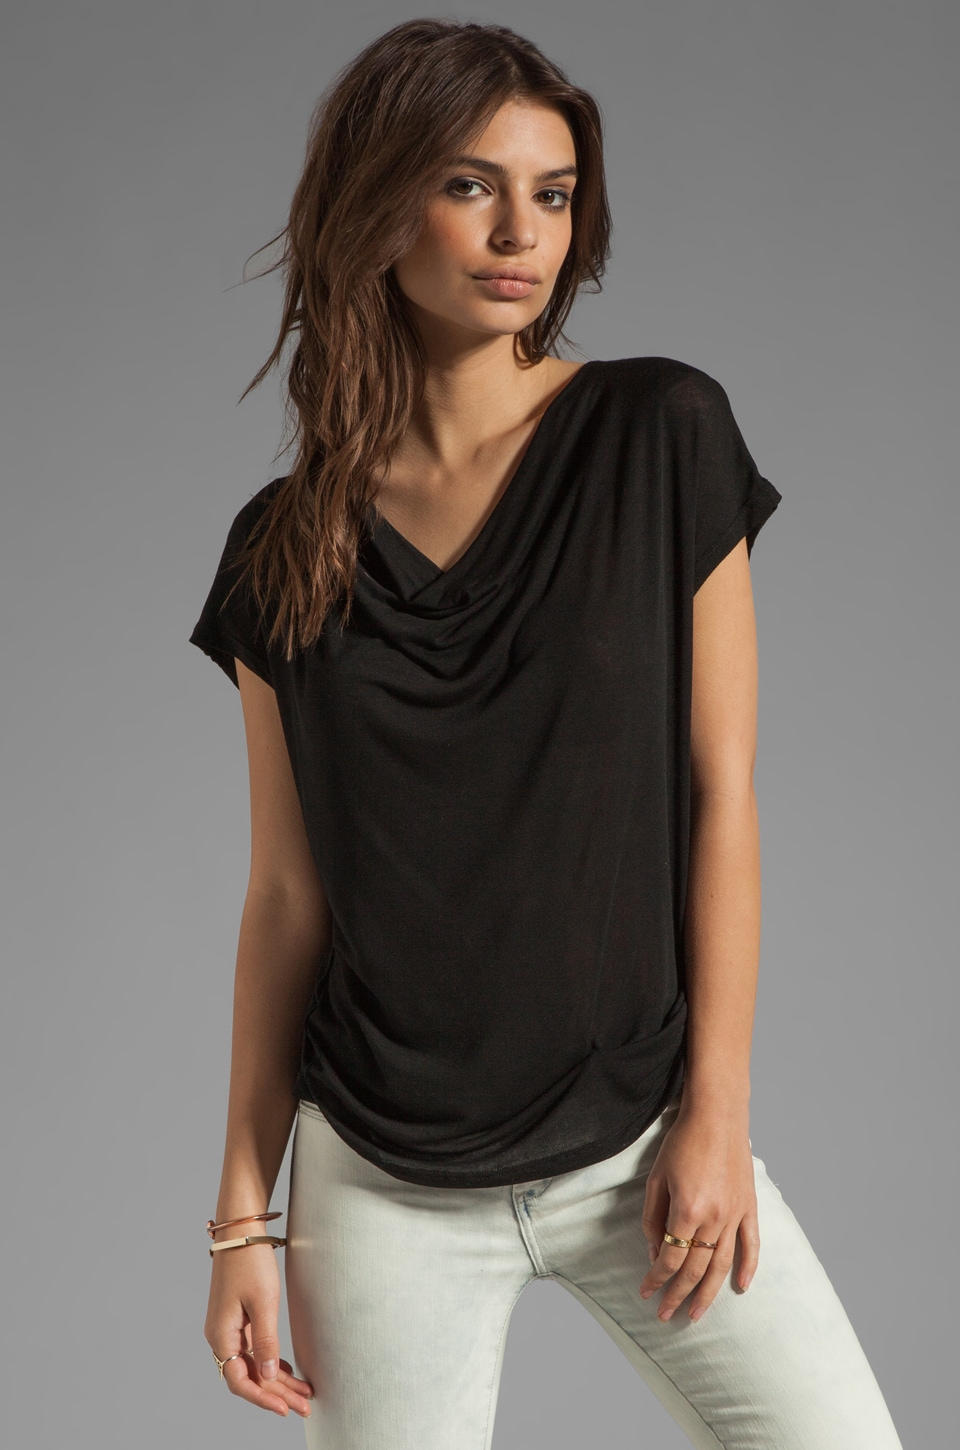 Splendid Drapey Lux Jersey Top in Black